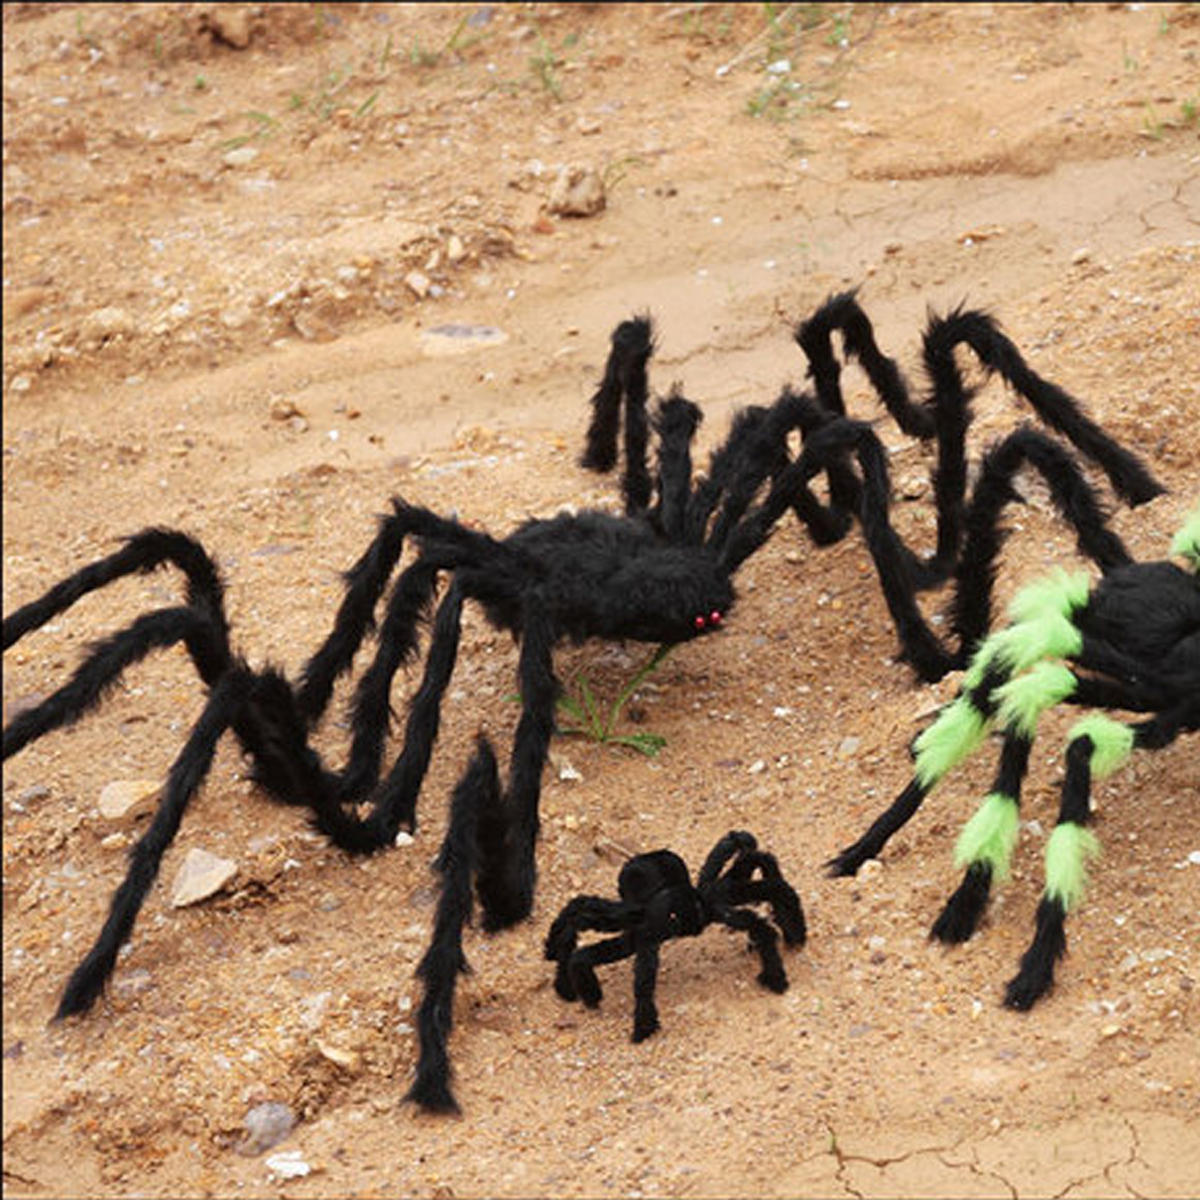 5FT/150cm Hairy Giant Spider Decorations Huge Halloween Outdoor Decor Toys for Party - 8